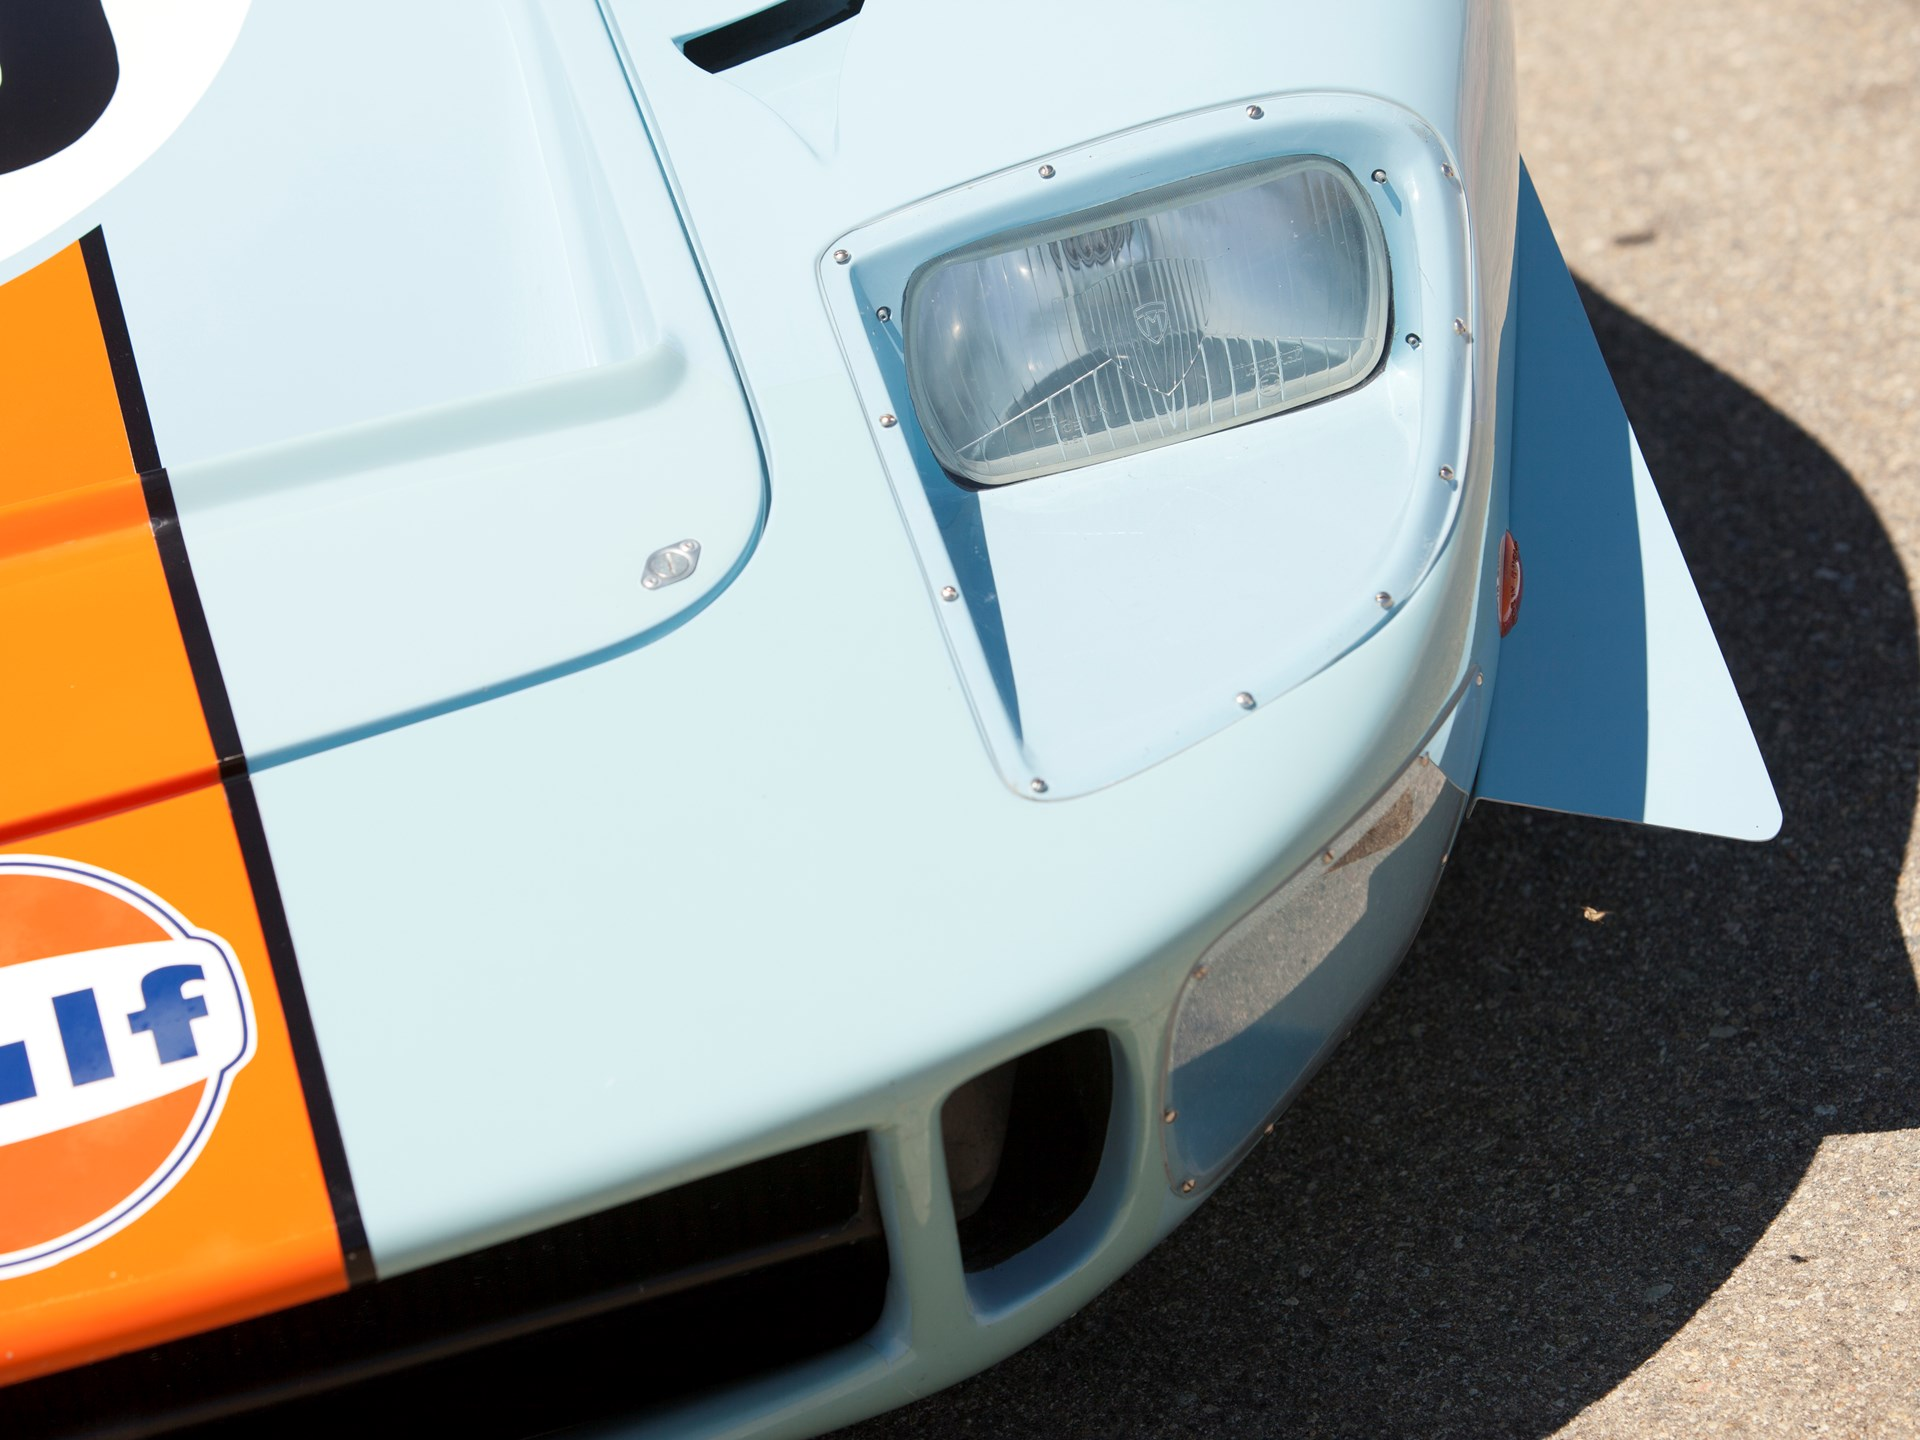 RM Sotheby's - 1968 Ford GT40 Gulf/Mirage Lightweight Racing Car